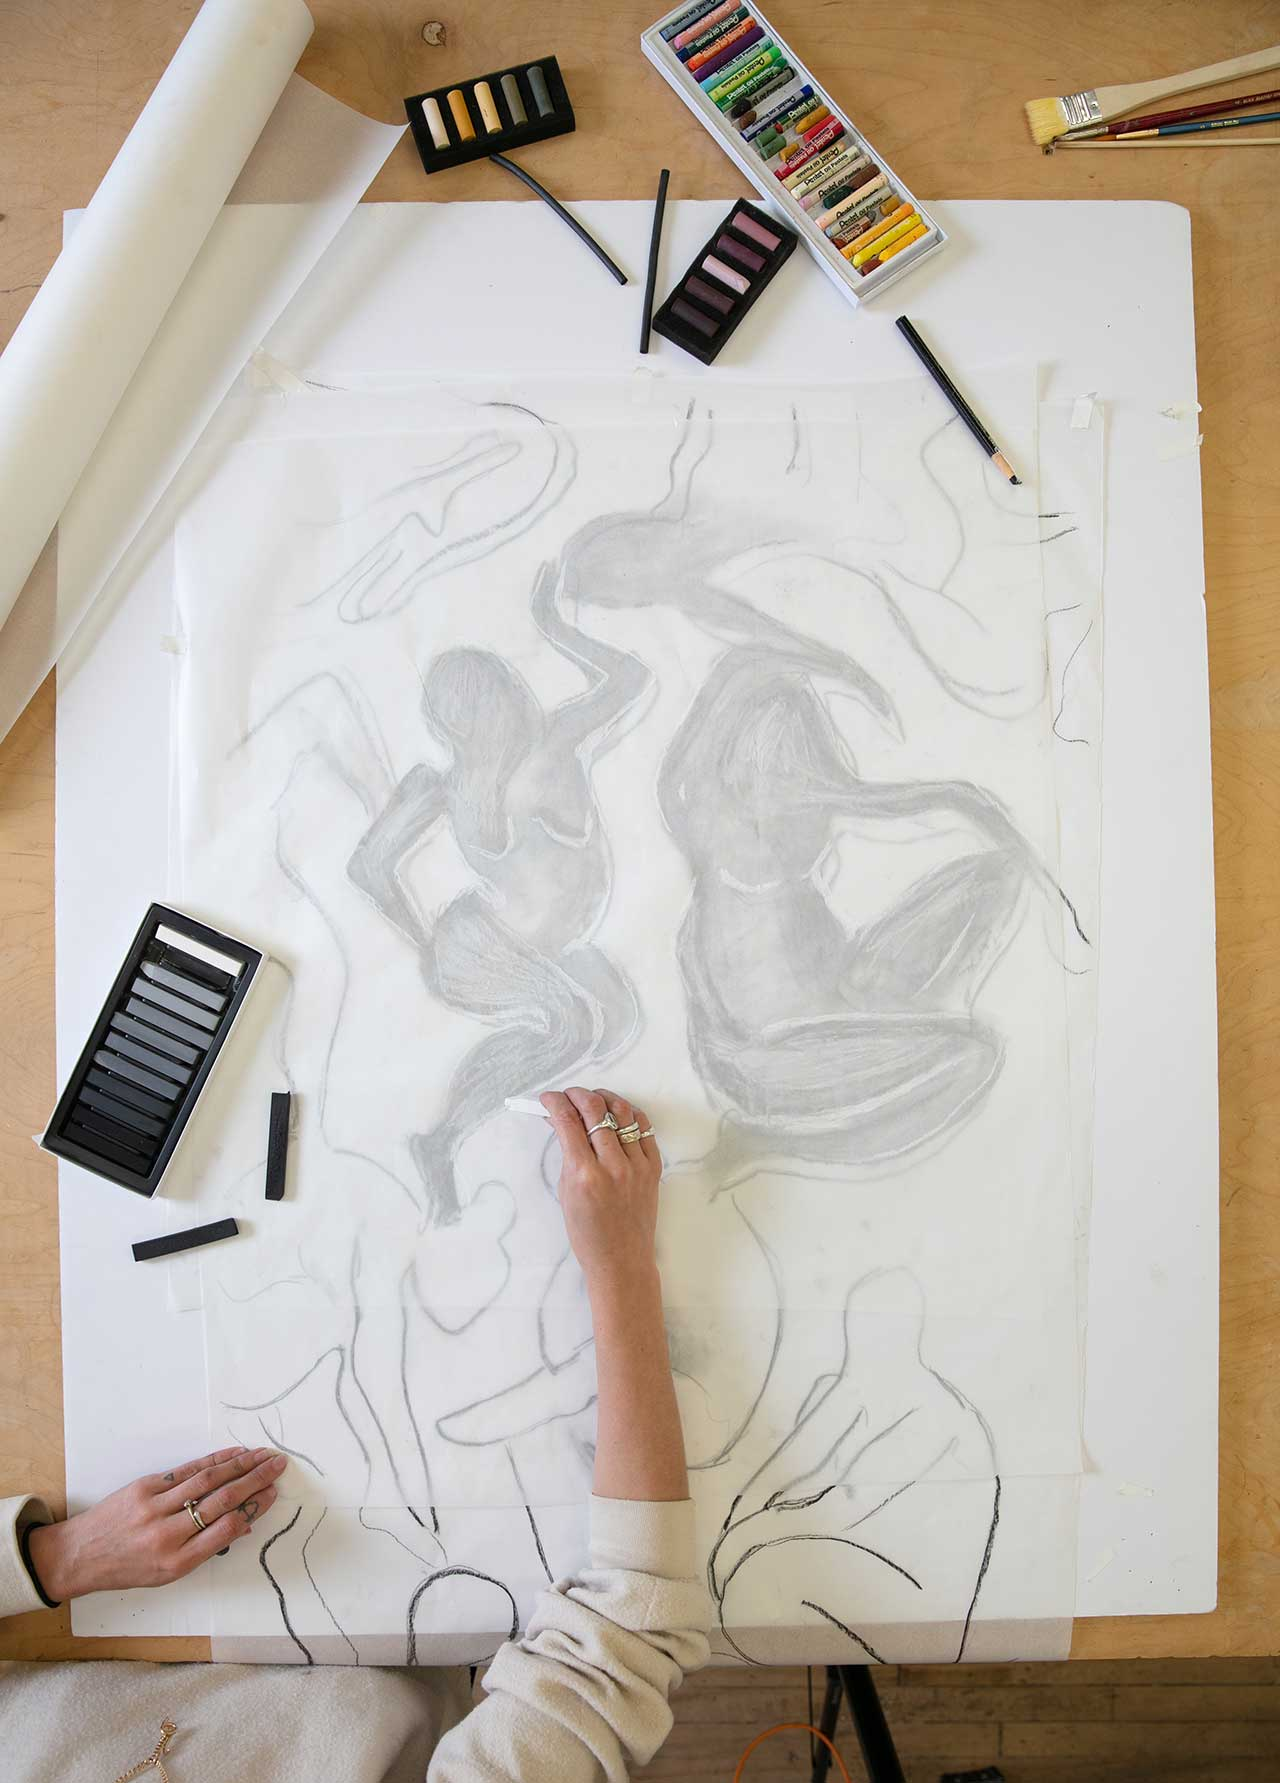 artist preparing layout of drawing over tracing paper